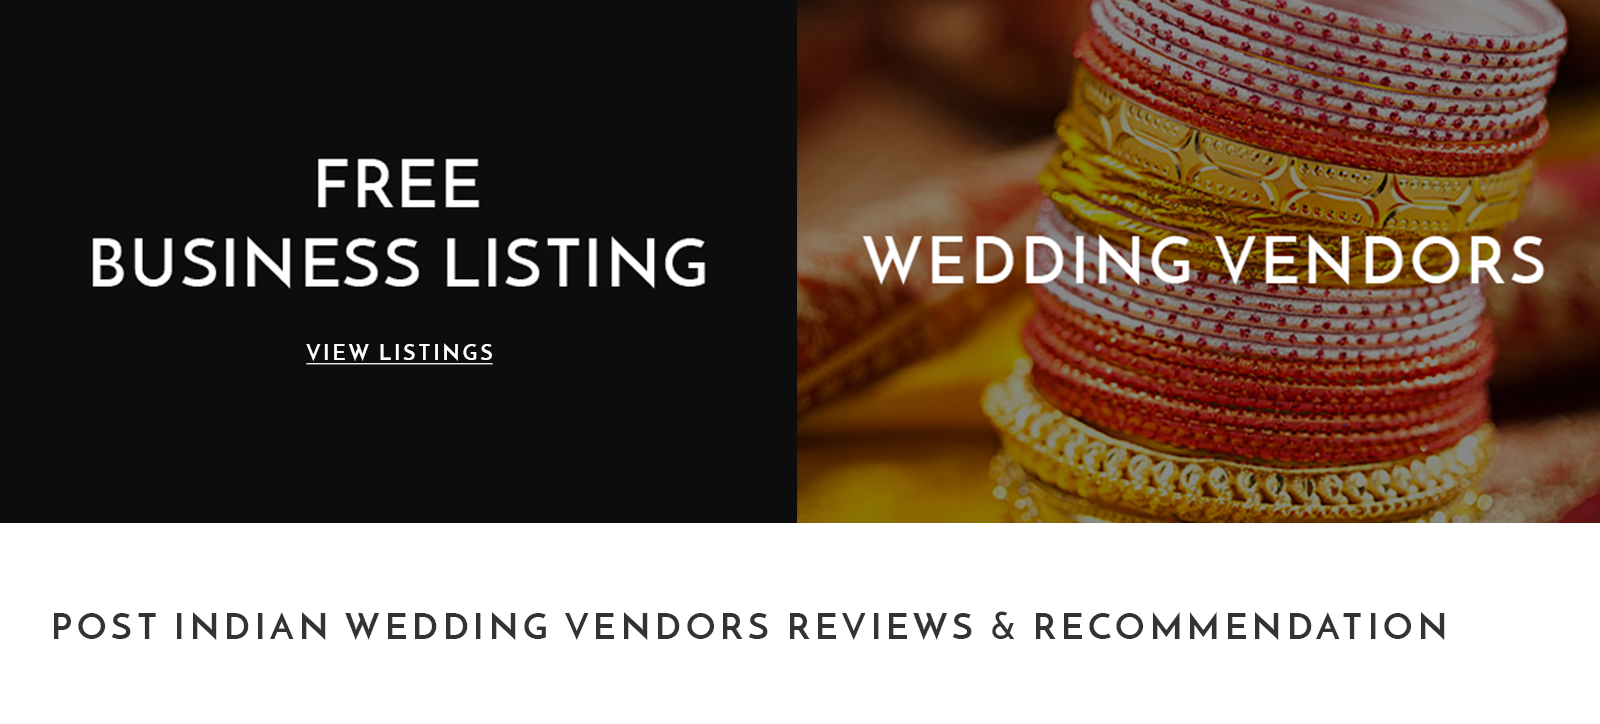 Wedding Vendor Banner